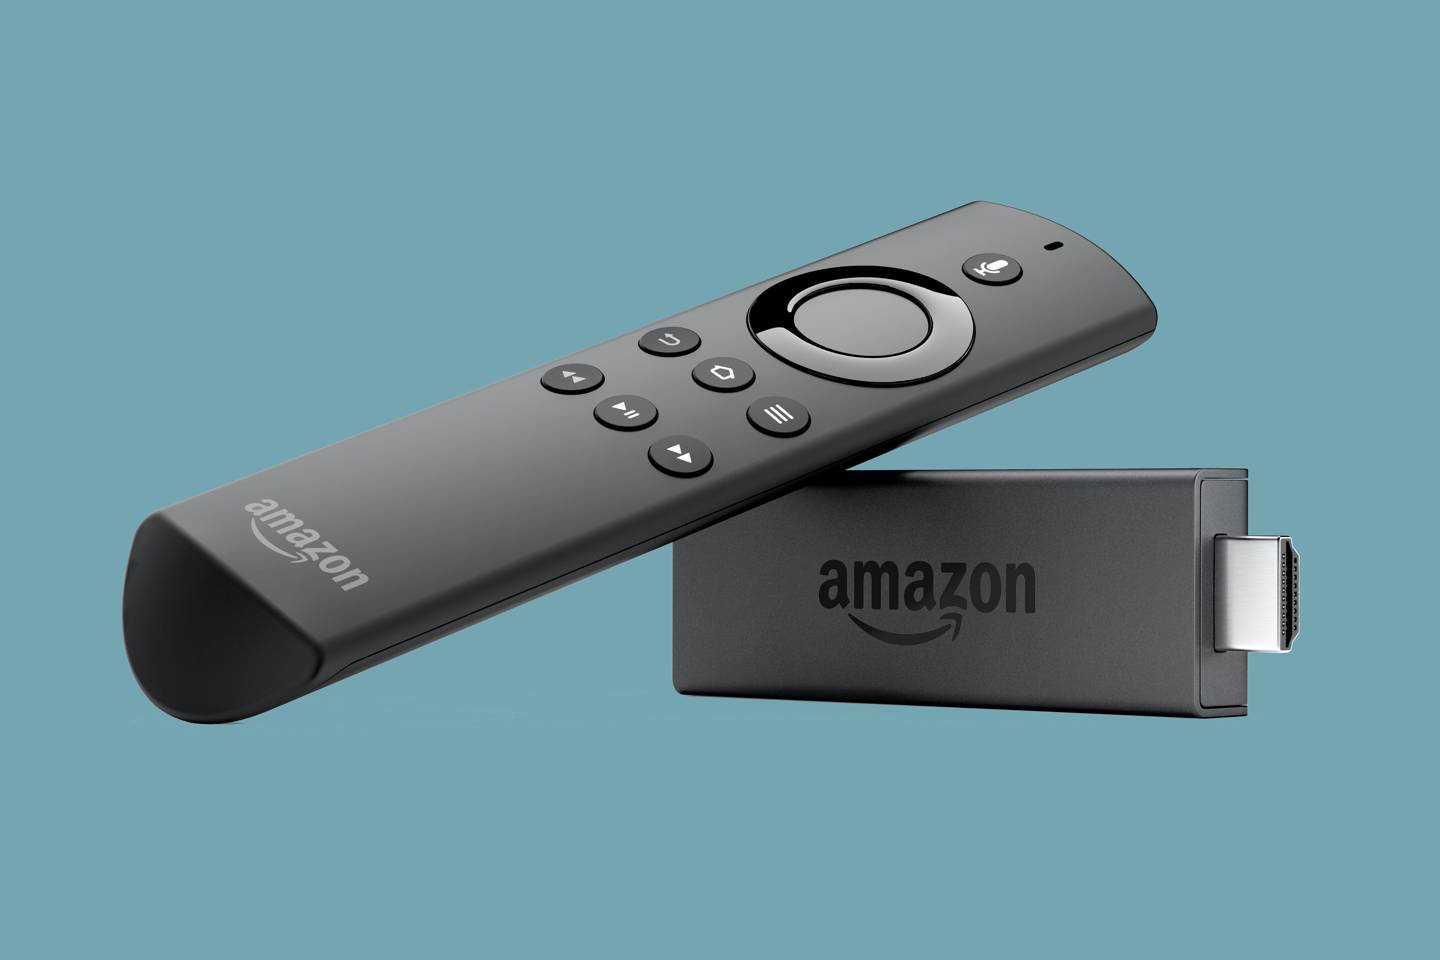 Amazon Fire TV Stick: Alexa adds voice control to your TV